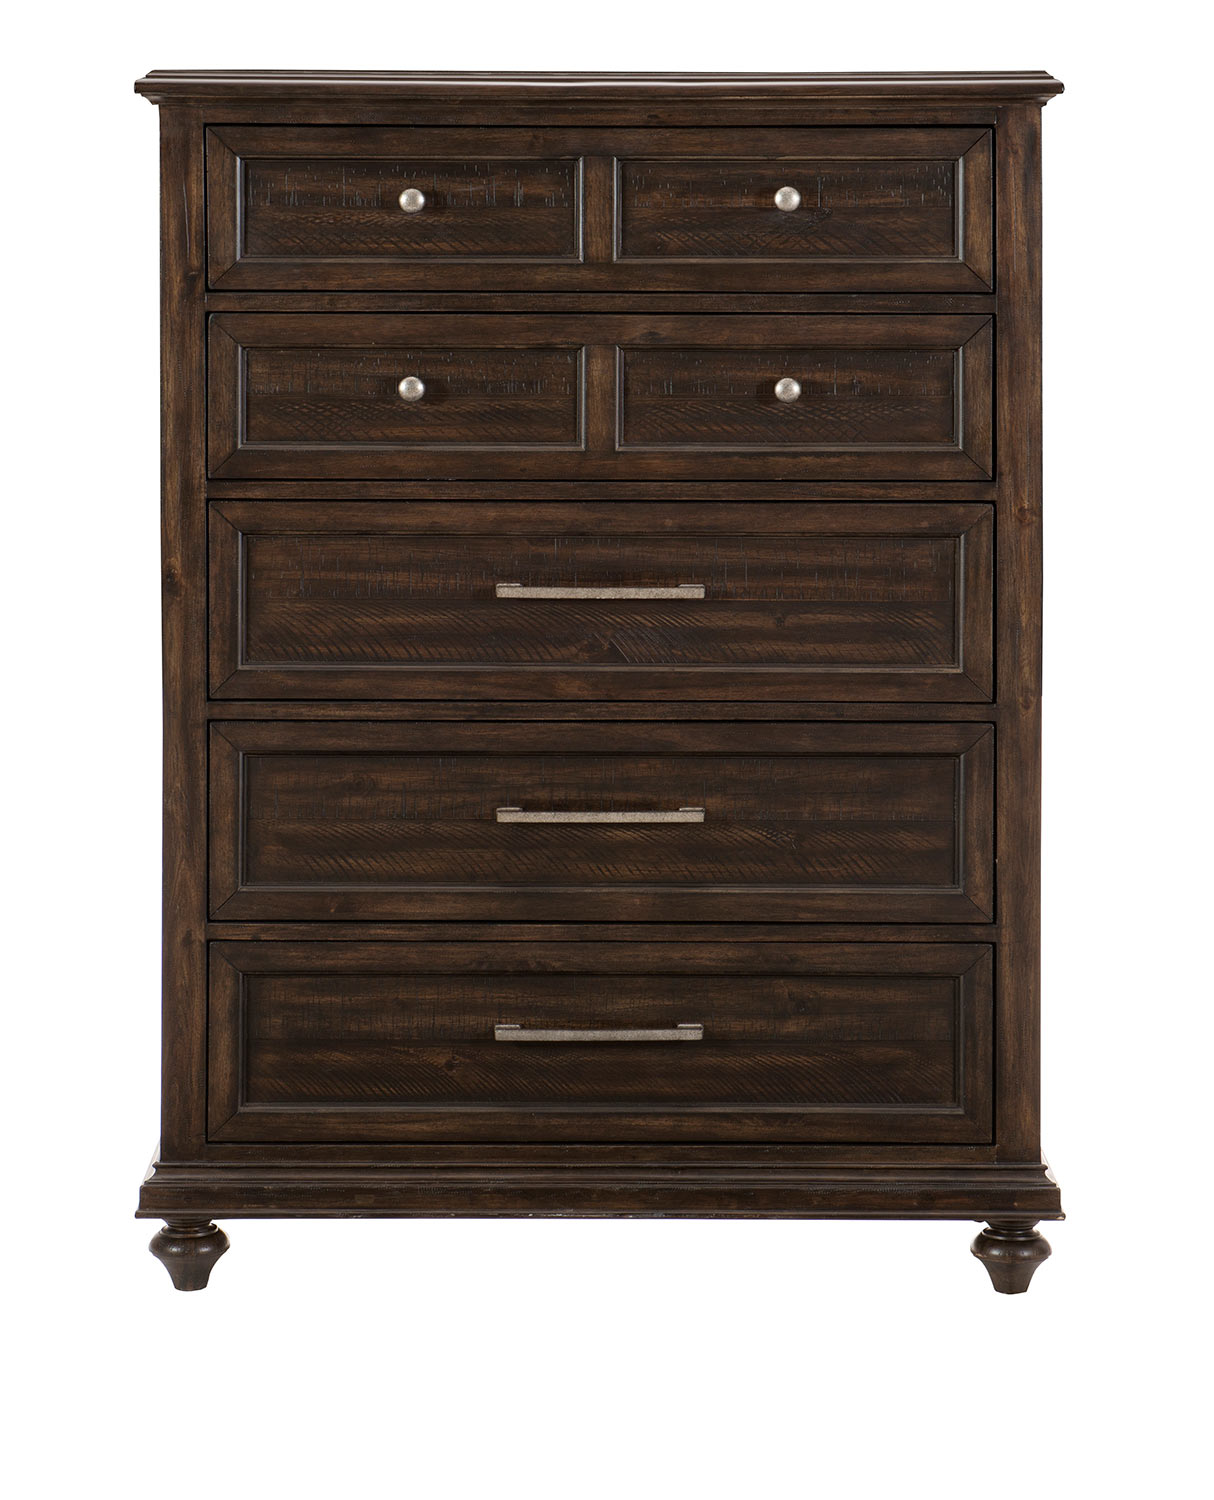 Homelegance Cardano Chest - Driftwood Charcoal over Acacia Solids and Veneers